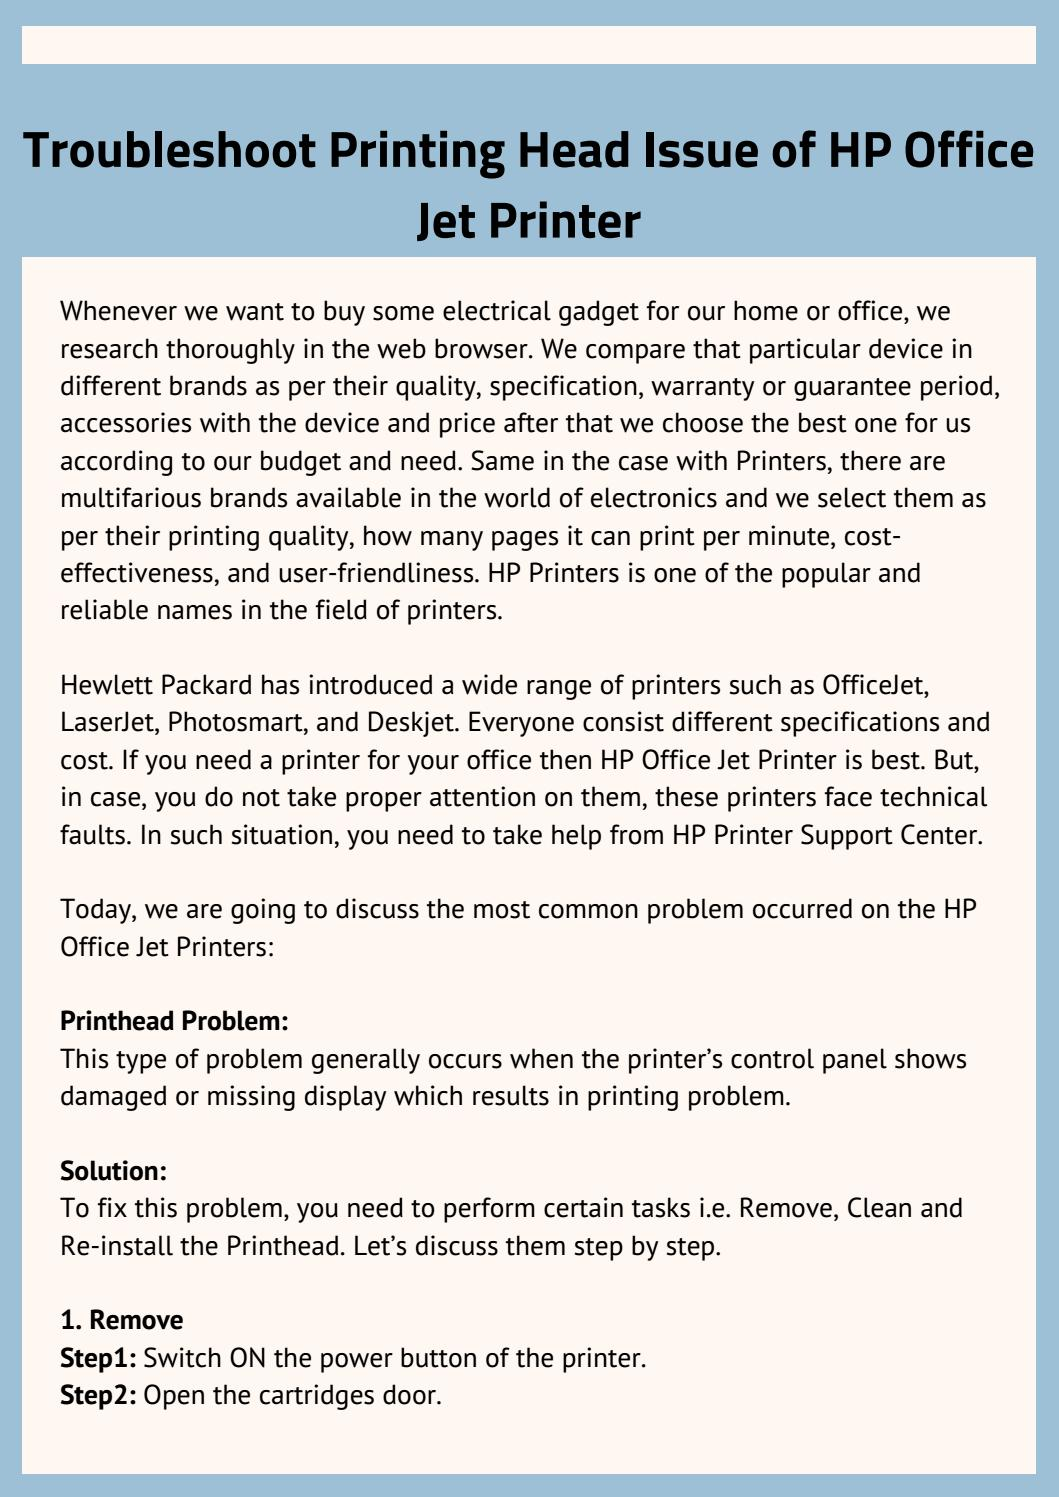 Troubleshoot Printing Head Issue of HP Office Jet Printer